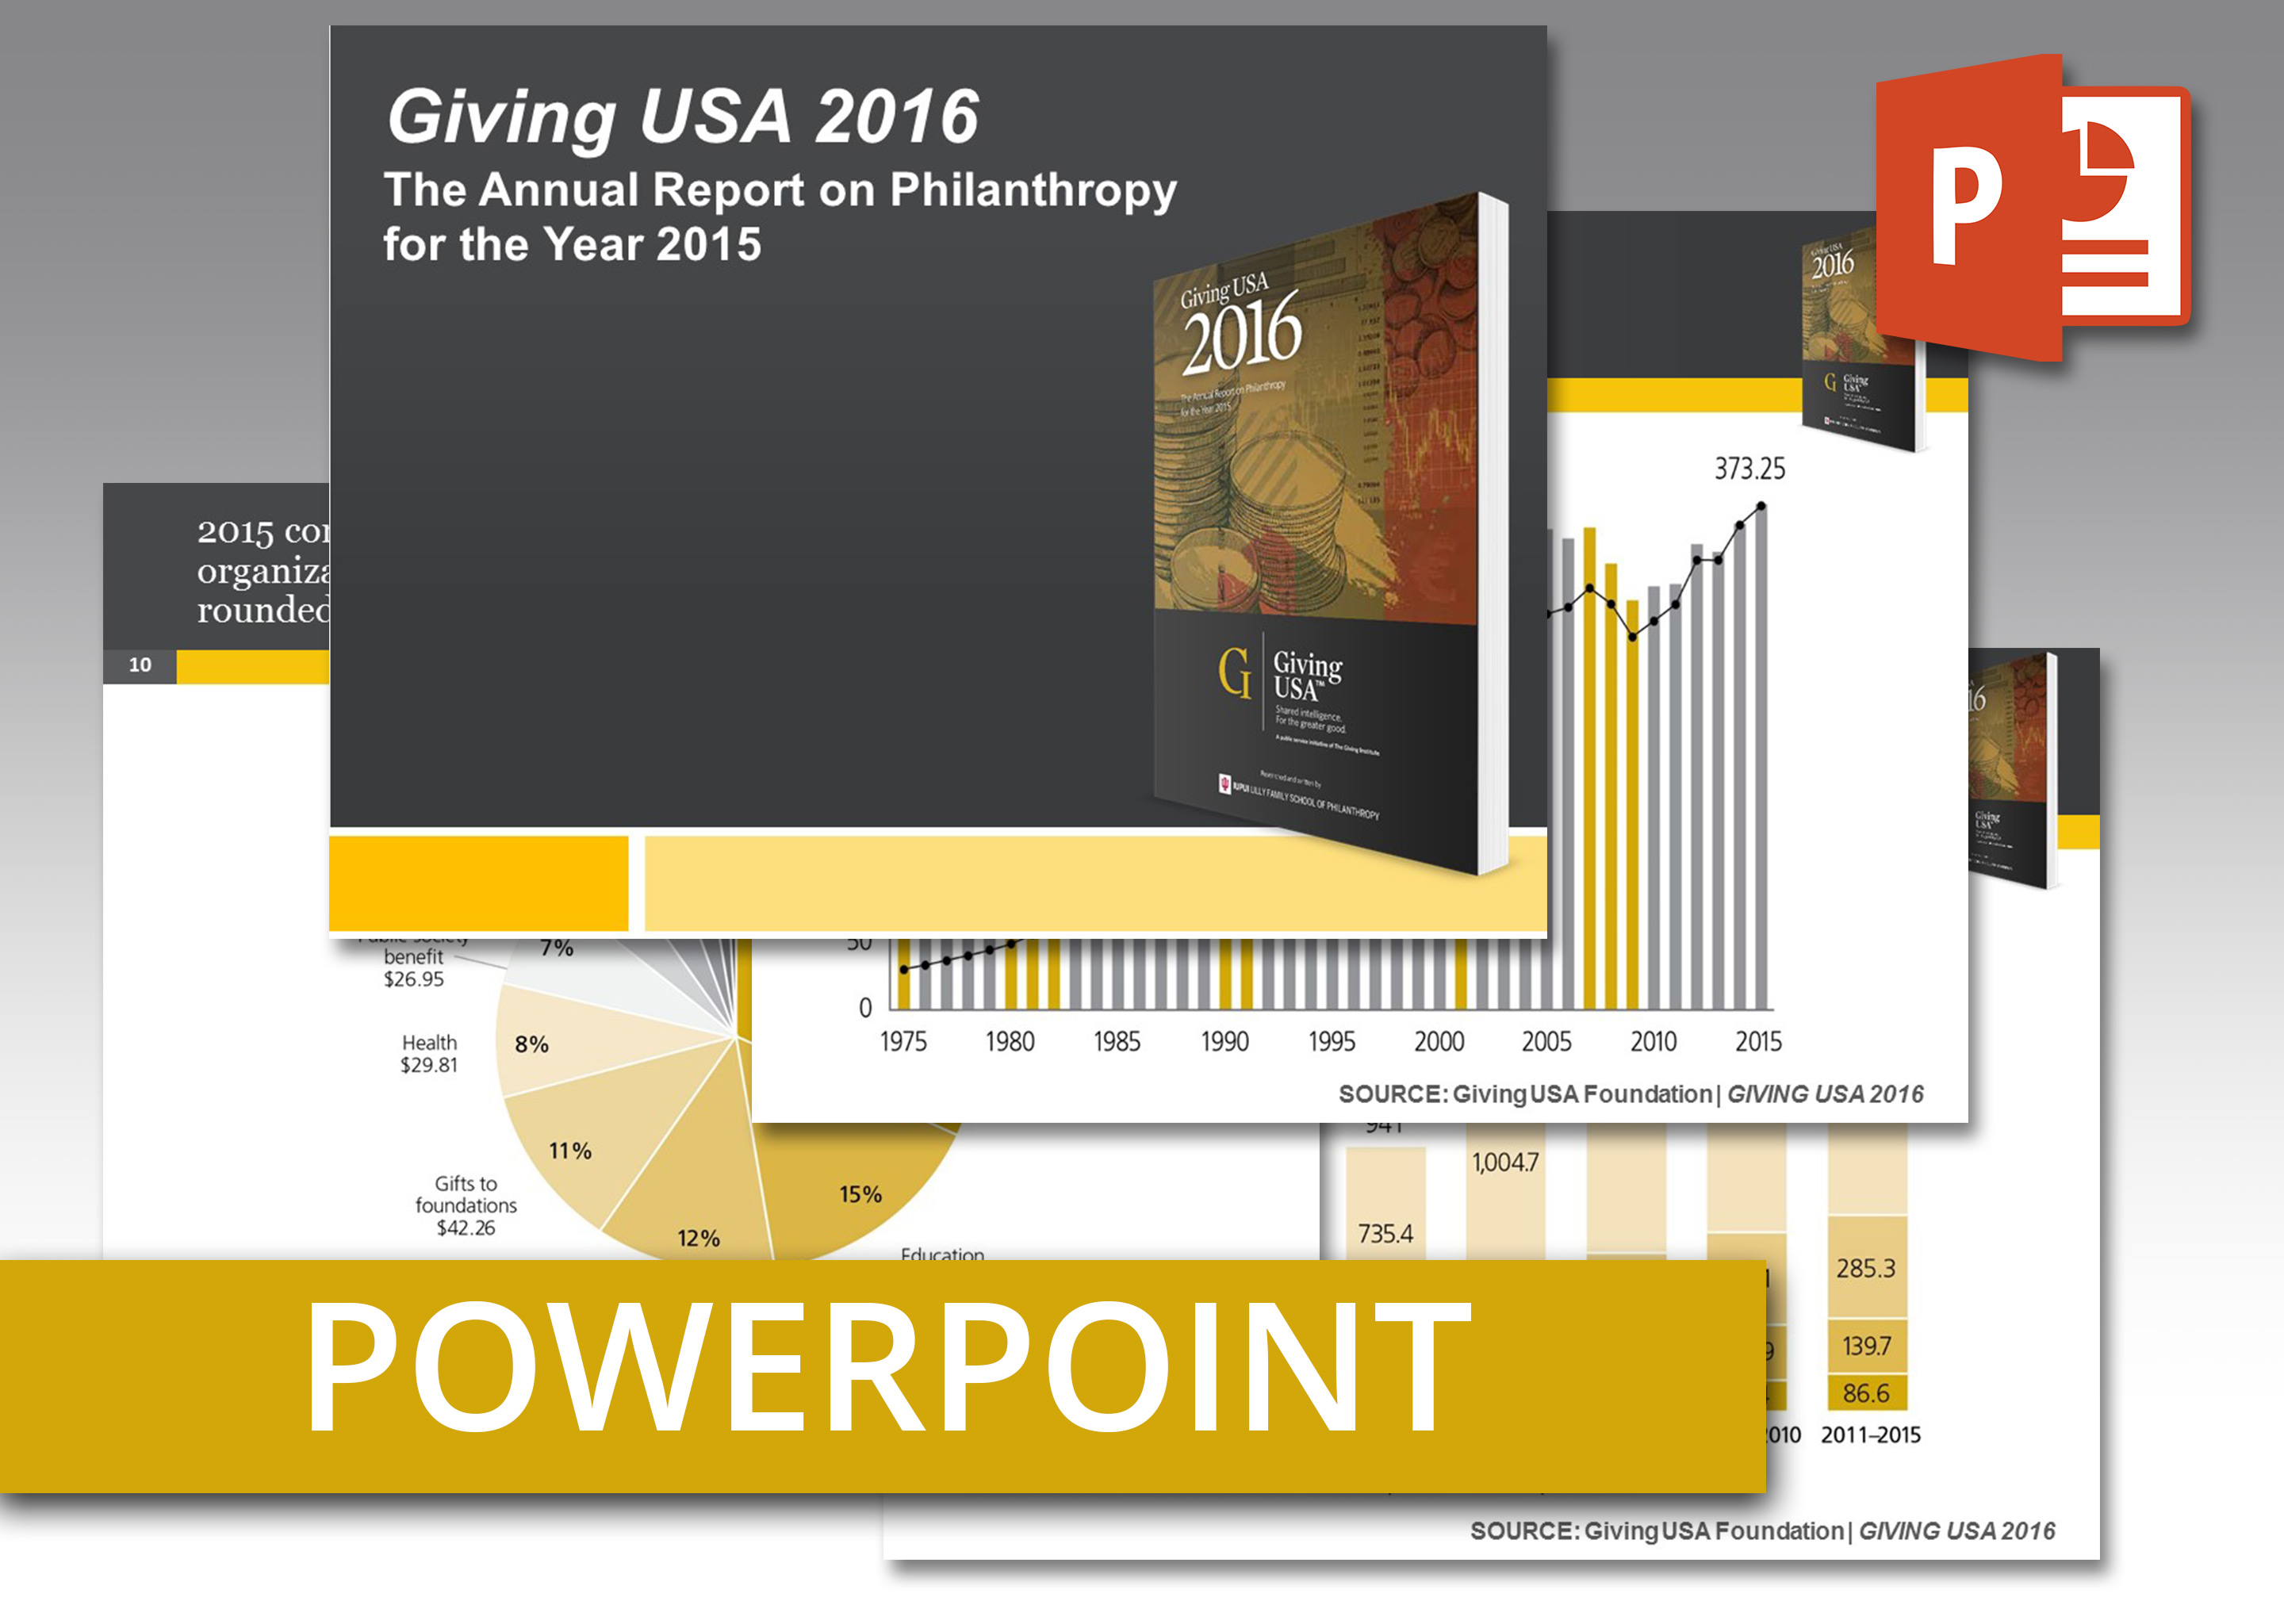 Usdgus  Nice Giving Usa  Powerpoint An Easytouse Presentation Of Report  With Great Giving Usa  Powerpoint An Easytouse Presentation Of Report Findings Including Talking Points With Amazing Powerpoint Presentation On Structure Of Atom Also Powerpoint Presentation Problems In Addition Powerpoint Themes Simple And Powerpoint Templates  As Well As Avoiding Plagiarism Powerpoint Additionally Slide Design For Powerpoint From Givingusaorg With Usdgus  Great Giving Usa  Powerpoint An Easytouse Presentation Of Report  With Amazing Giving Usa  Powerpoint An Easytouse Presentation Of Report Findings Including Talking Points And Nice Powerpoint Presentation On Structure Of Atom Also Powerpoint Presentation Problems In Addition Powerpoint Themes Simple From Givingusaorg